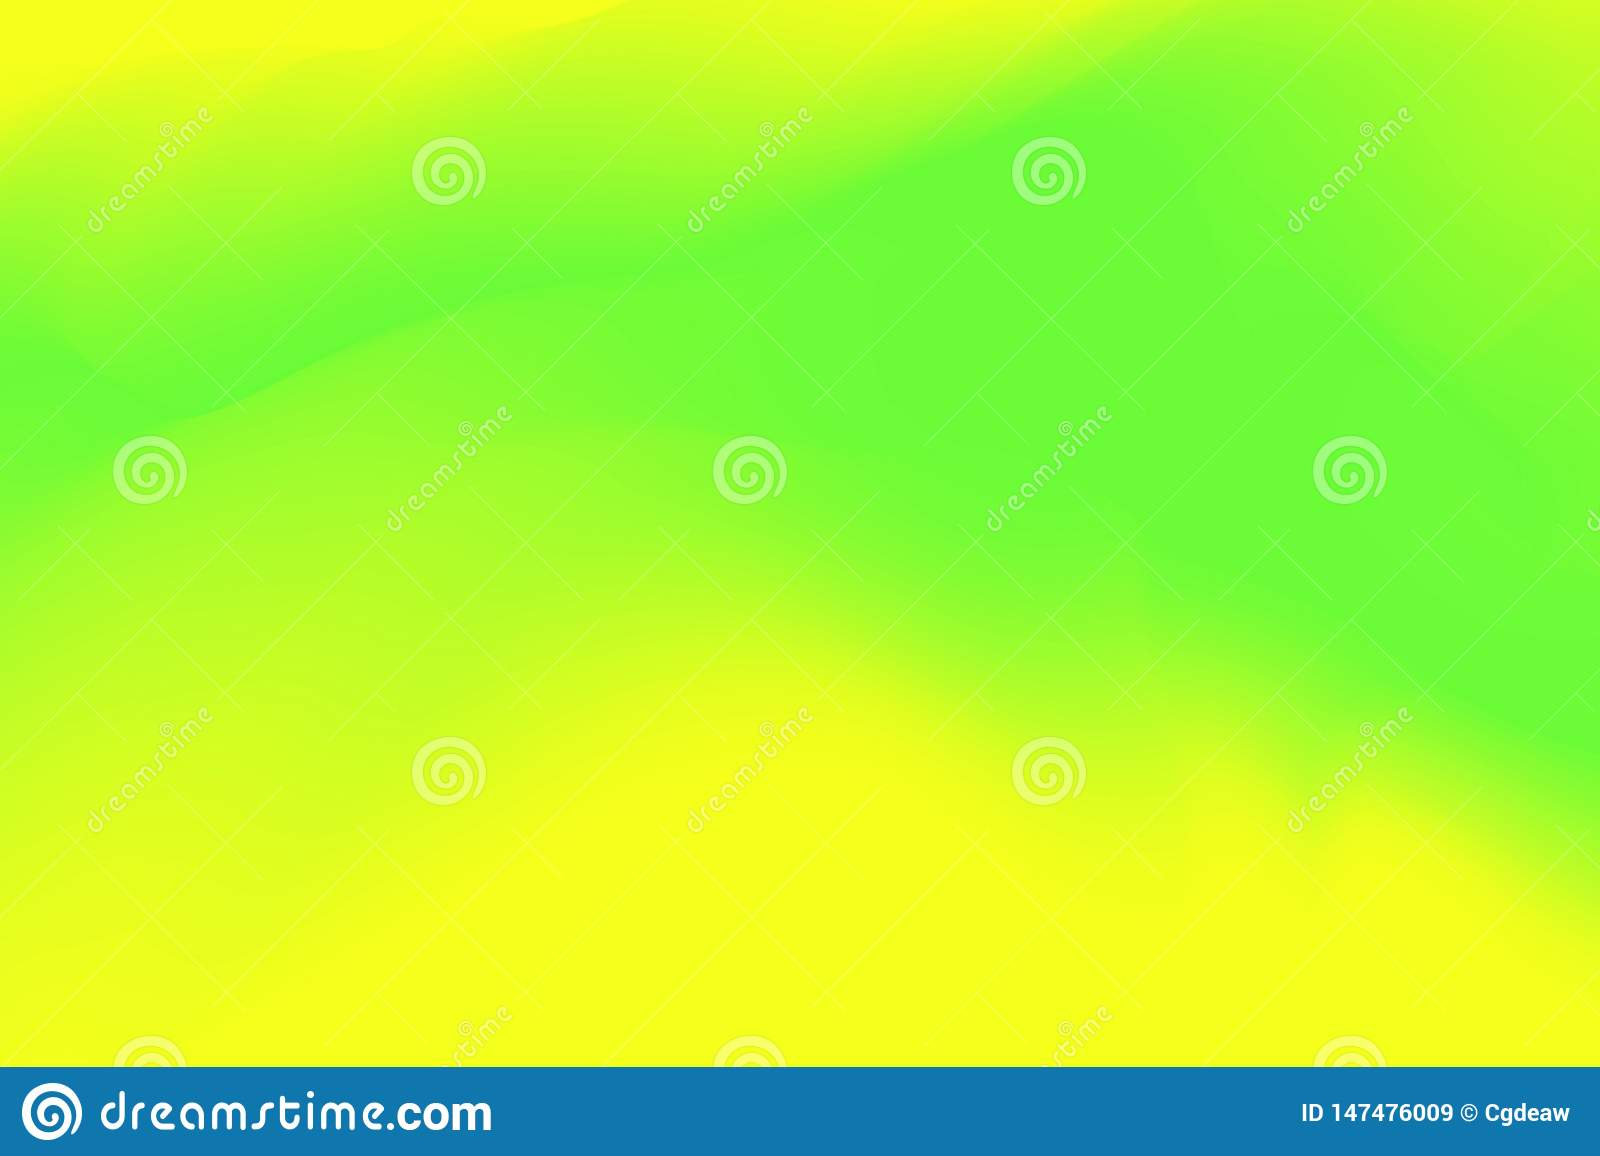 Blurred green and yellow pastel colors soft wave colorful effect for background abstract, illustration gradient in water color art